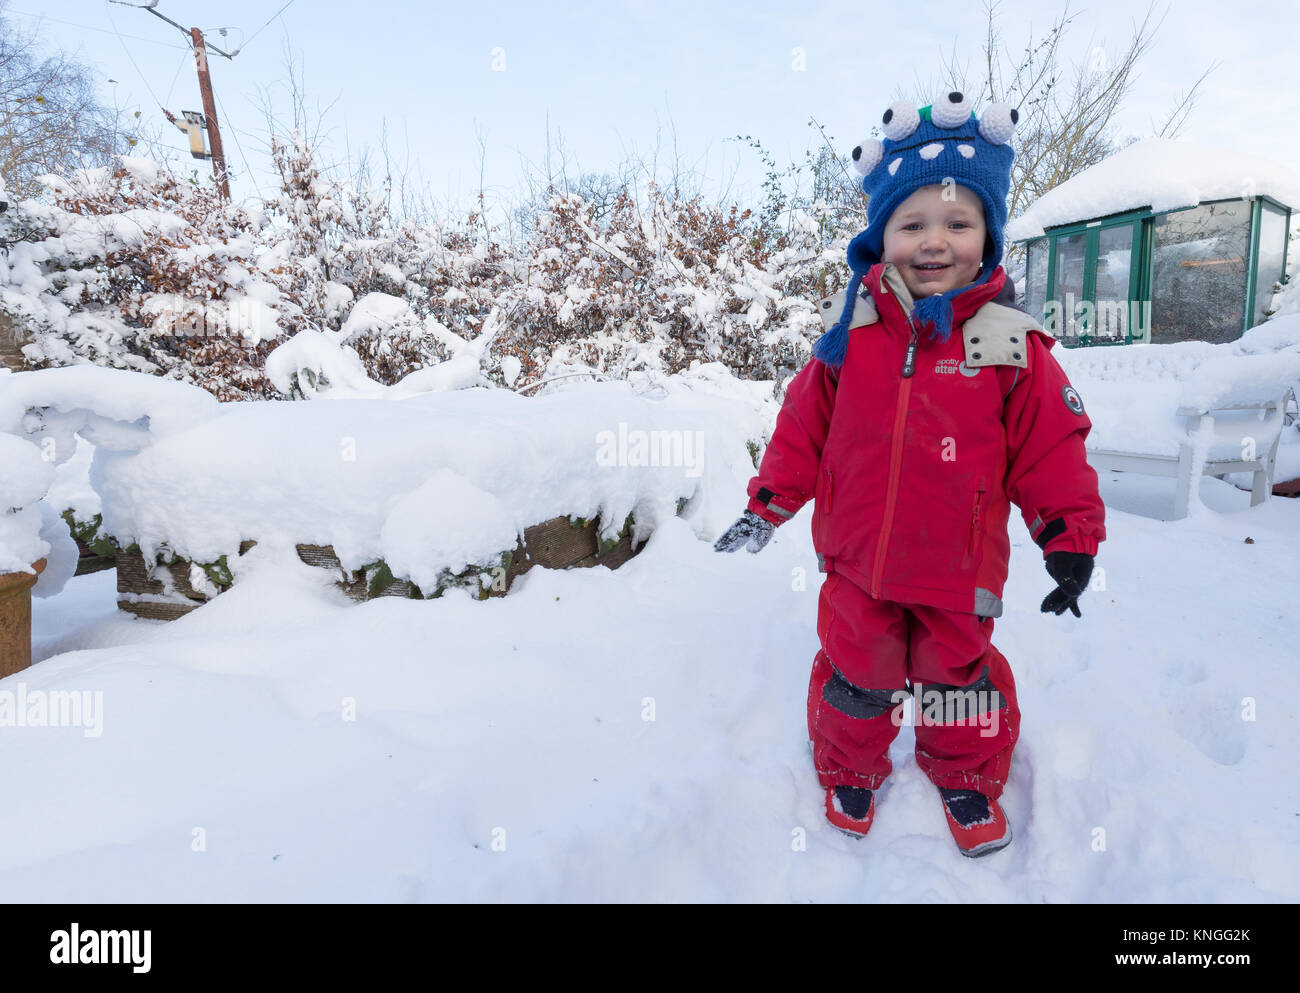 First snow in this 3-year old boys life! Out in the garden in Herefordshire, UK. - Stock Image